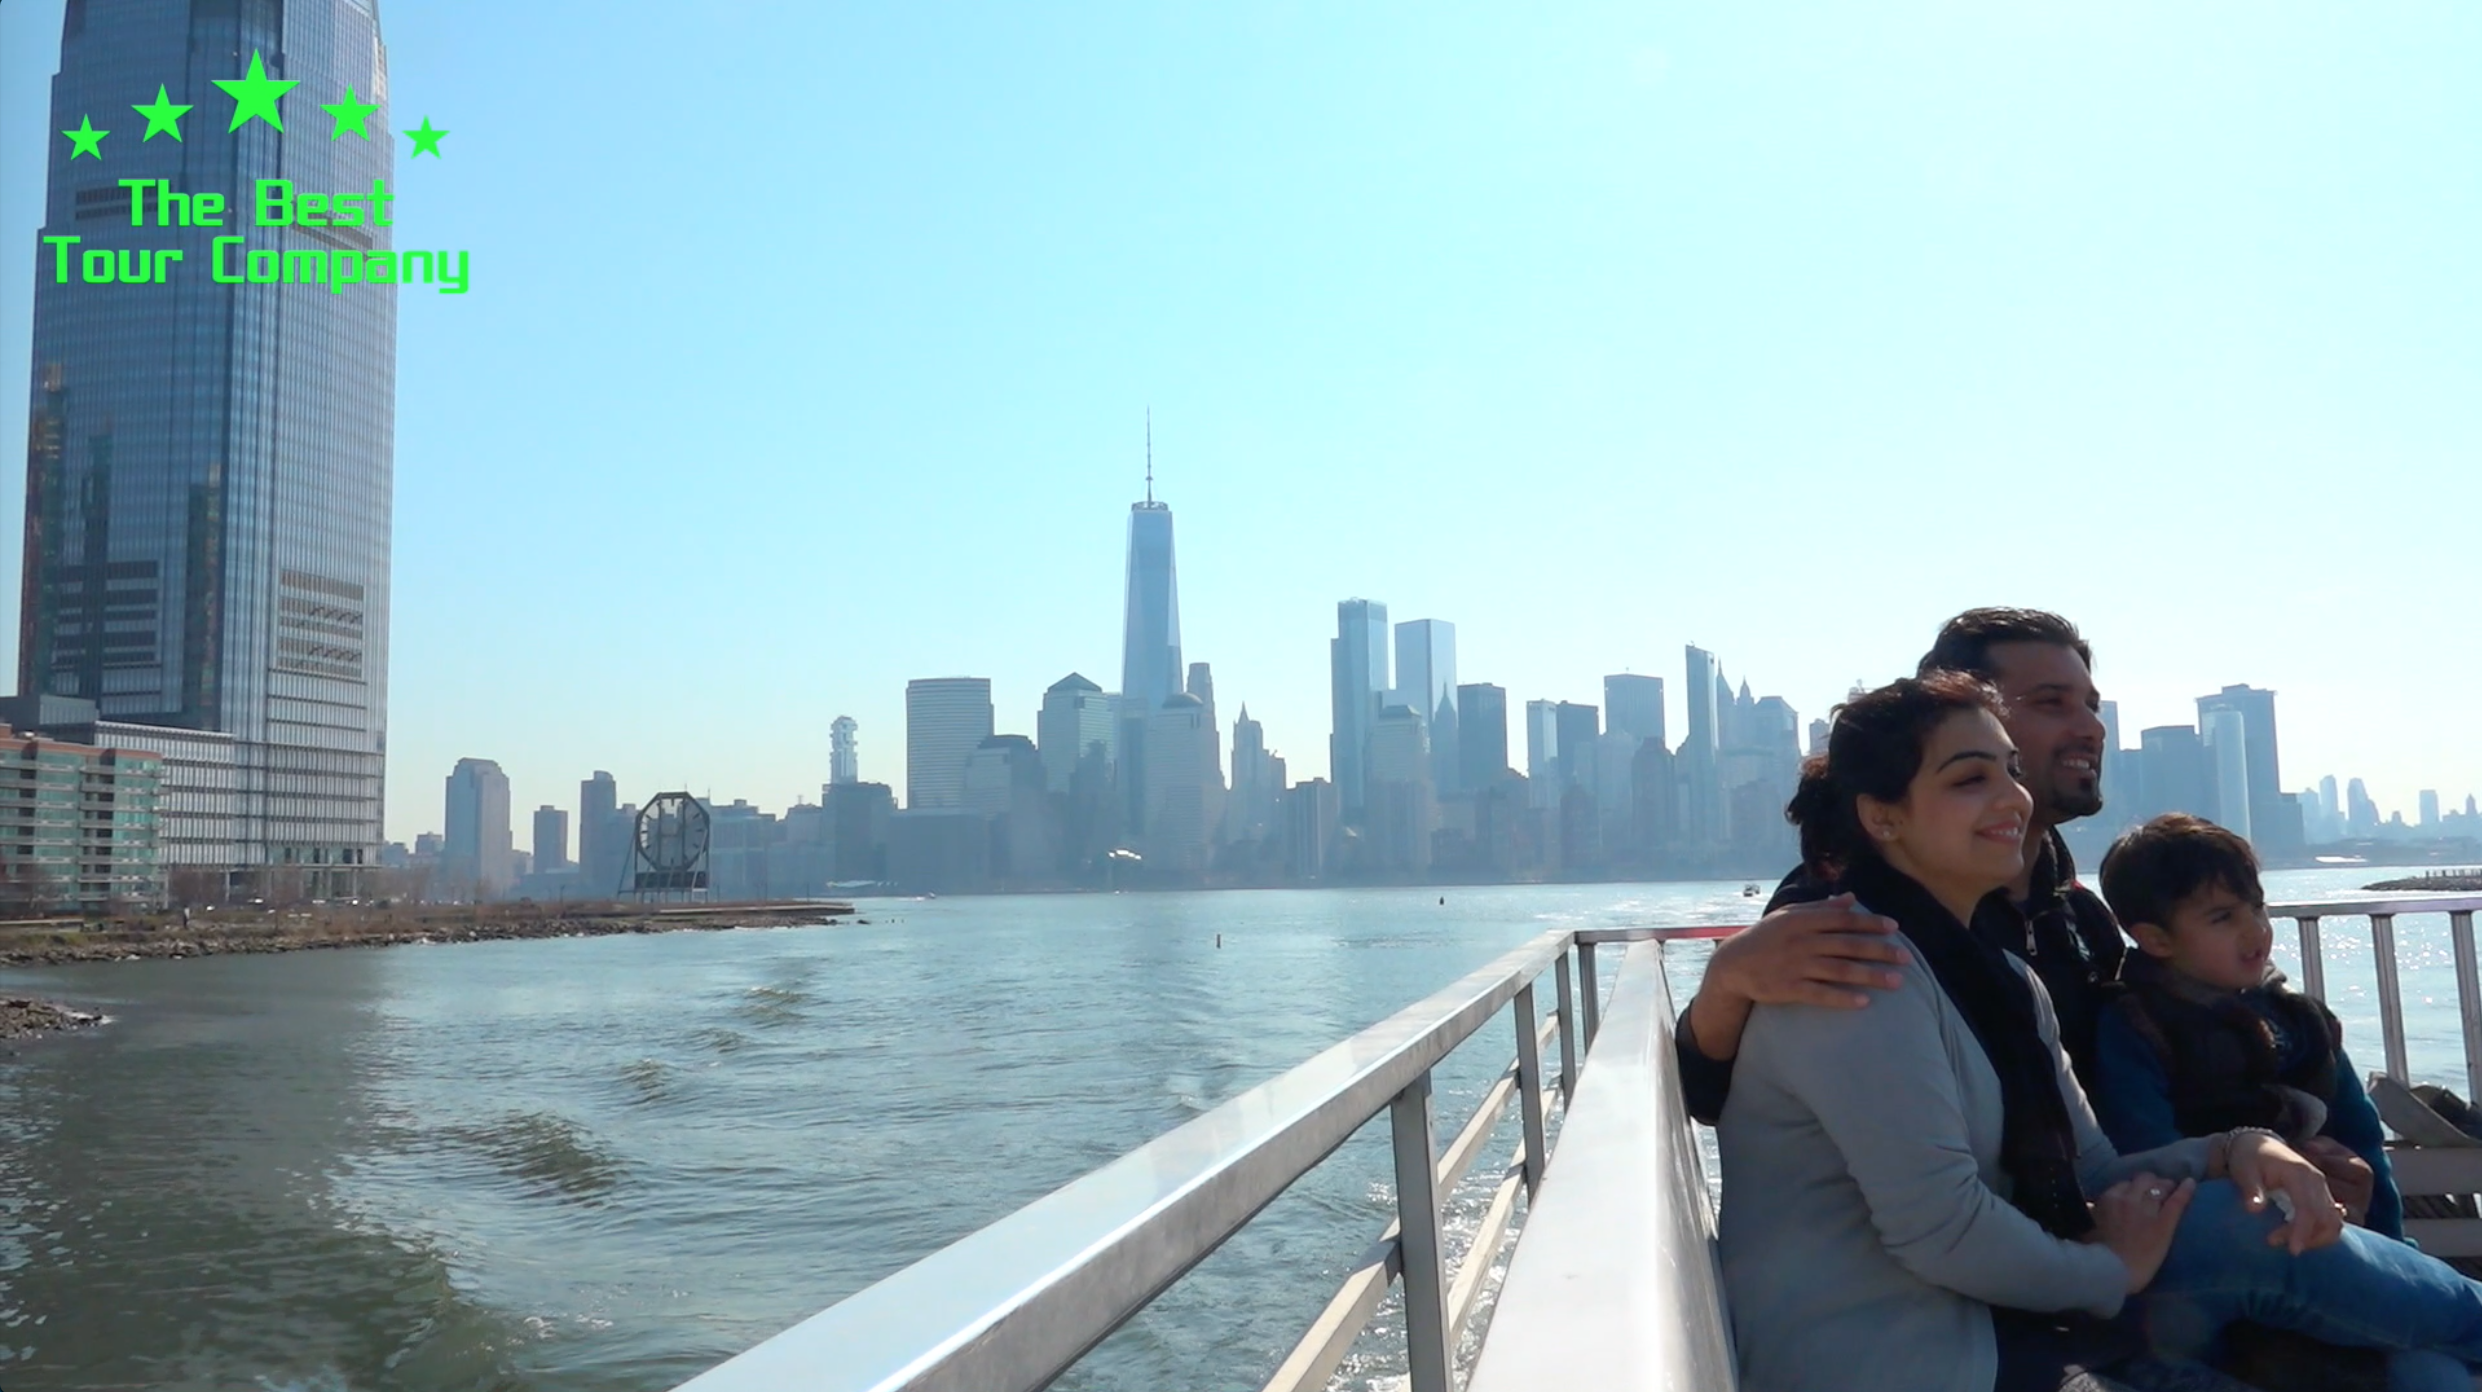 Unbeatable views of the New York Skyline exclusive to The Best Tour Company's Ultimate Downtown & Harbor Experience Tour...